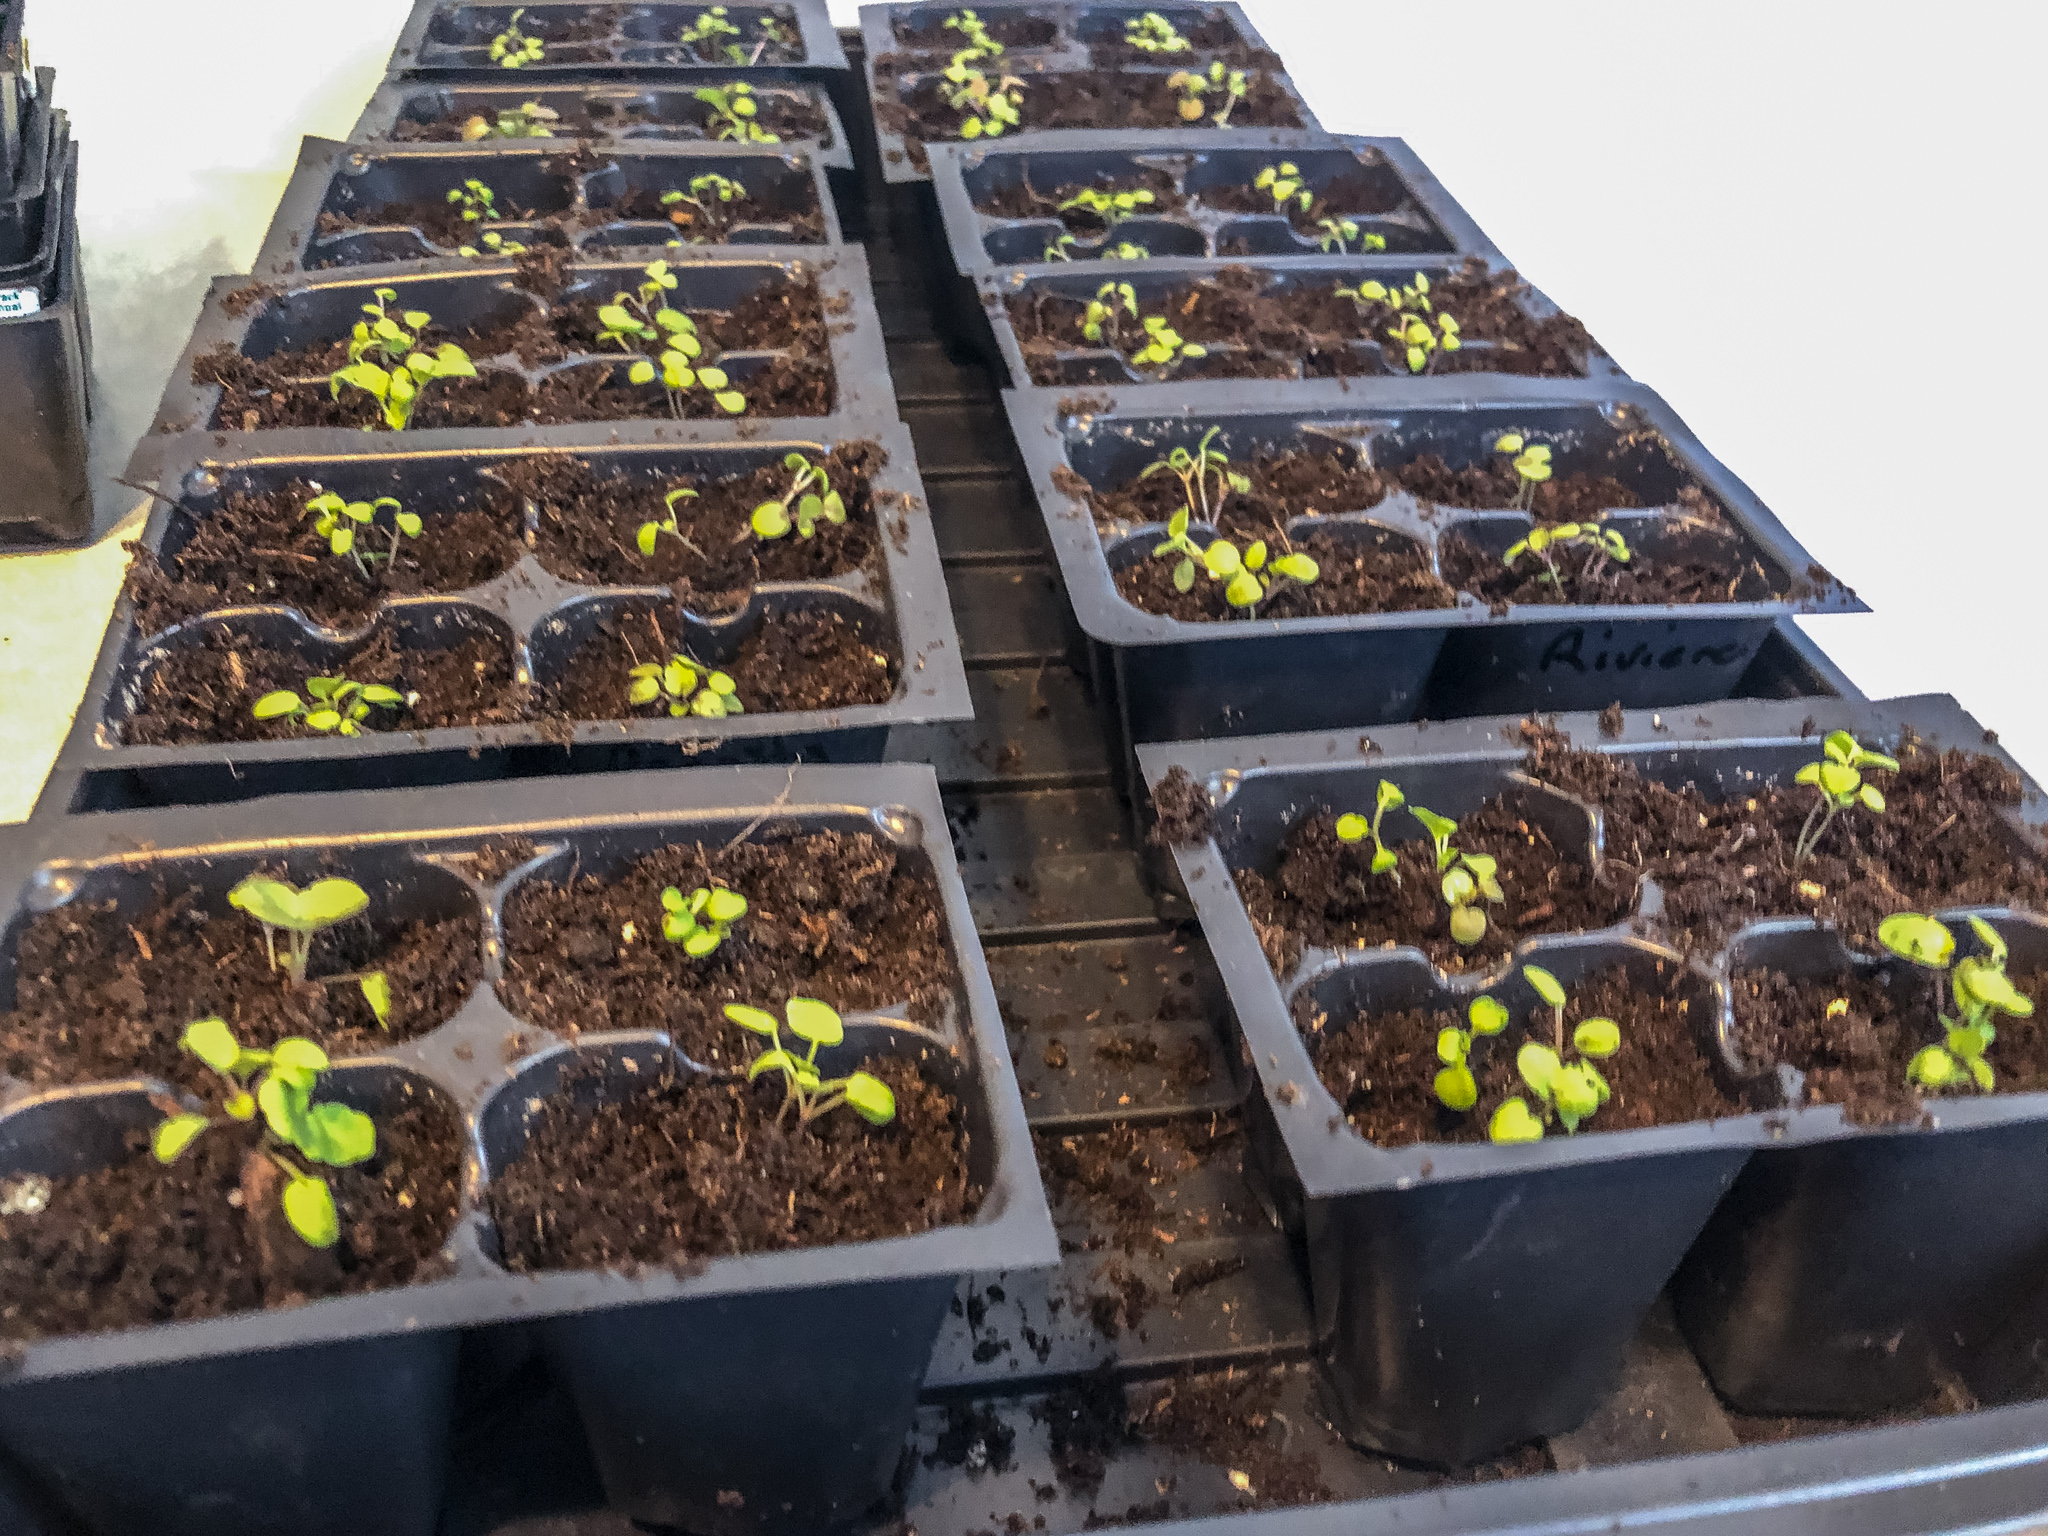 Finished trays of transplanted pansy seedlings.